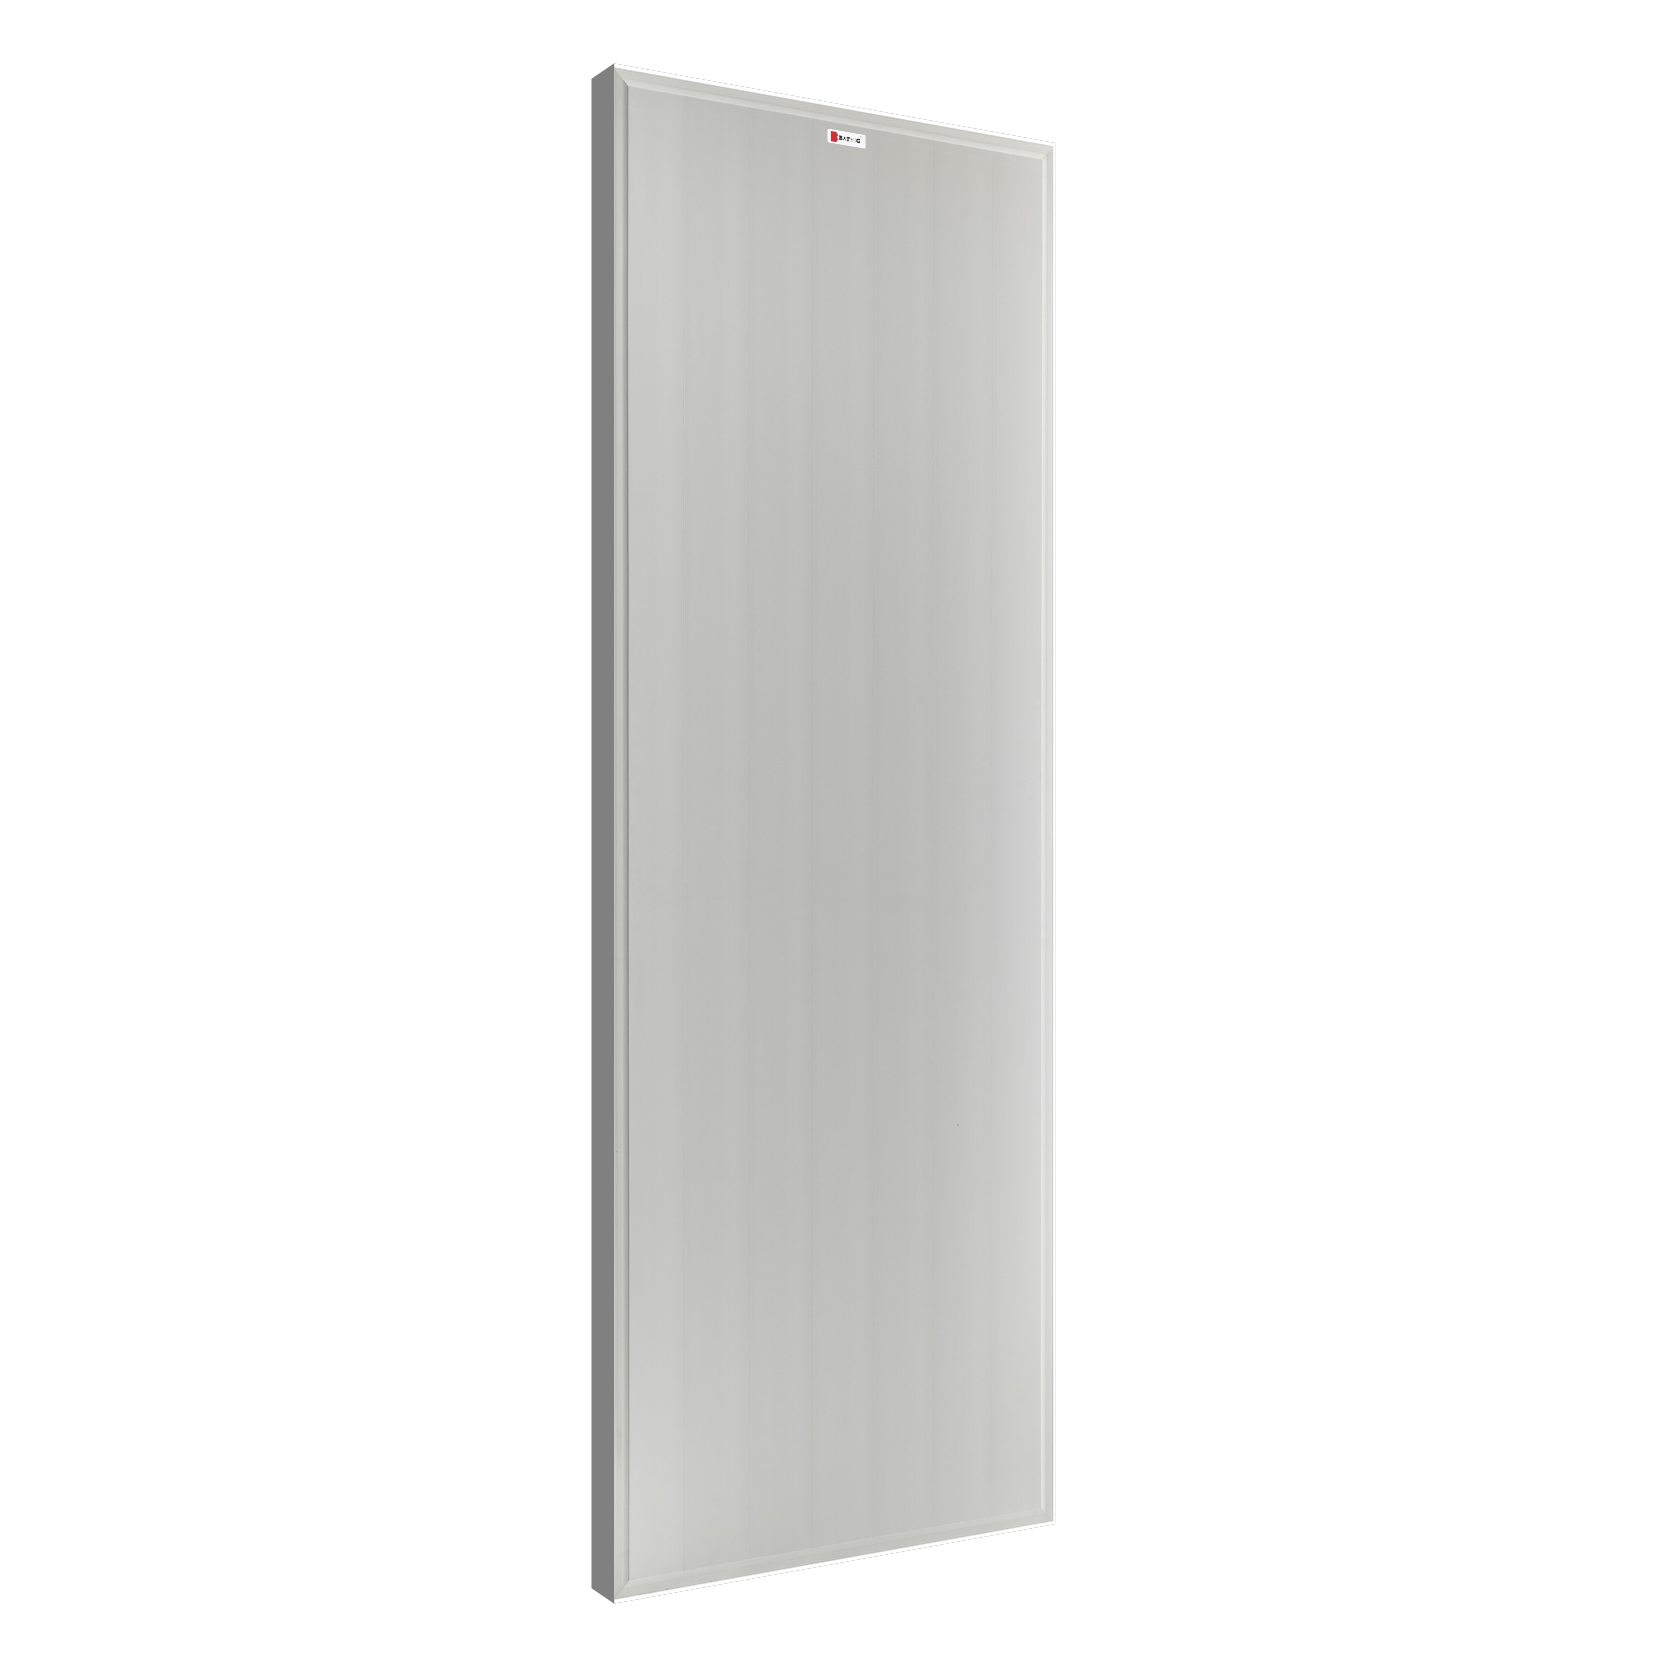 door-pvc-bathic-bs1-grey-3